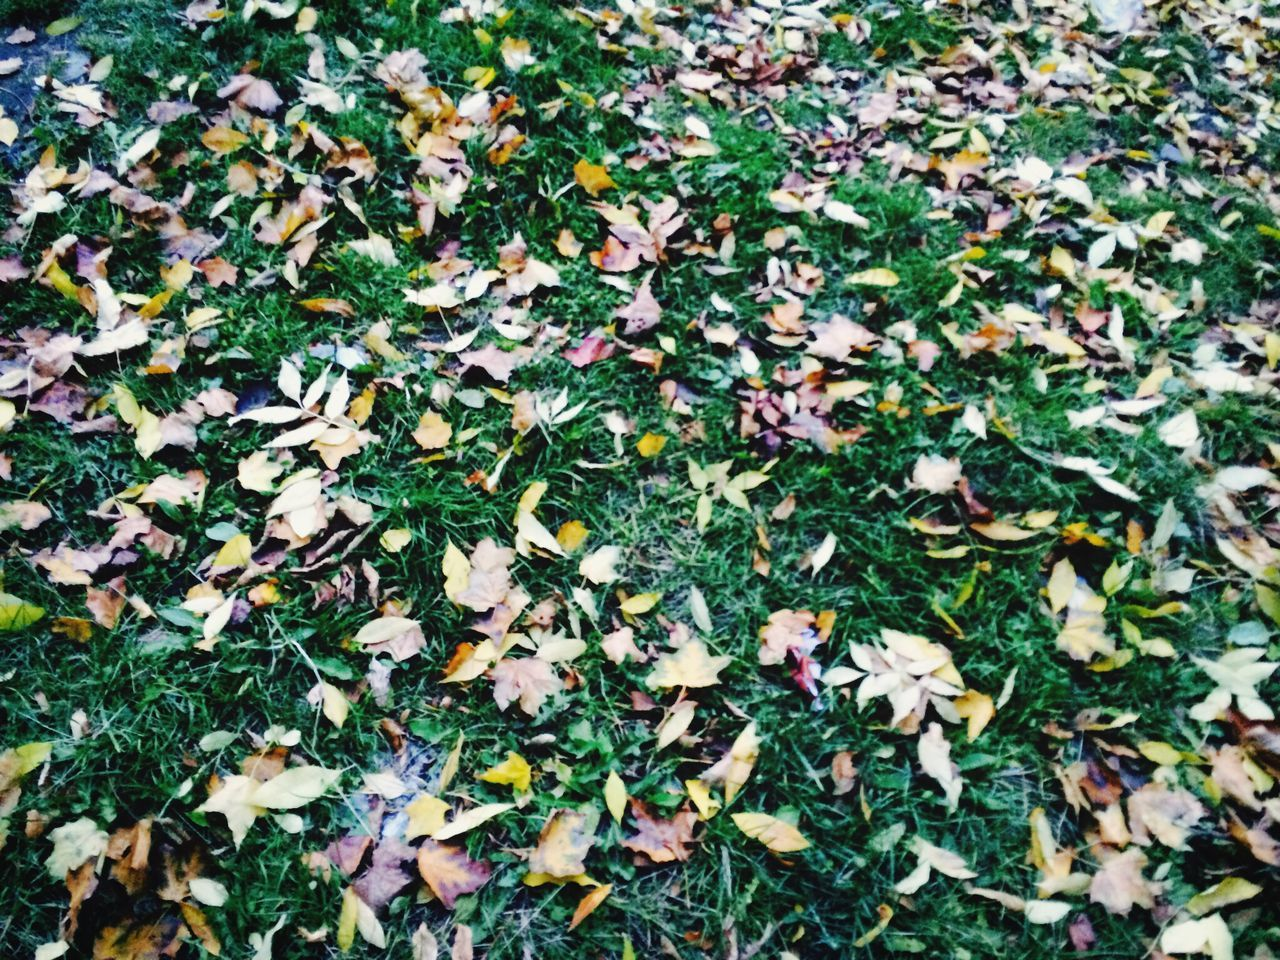 leaf, nature, leaves, growth, day, outdoors, autumn, fallen, change, no people, green color, field, beauty in nature, fragility, close-up, freshness